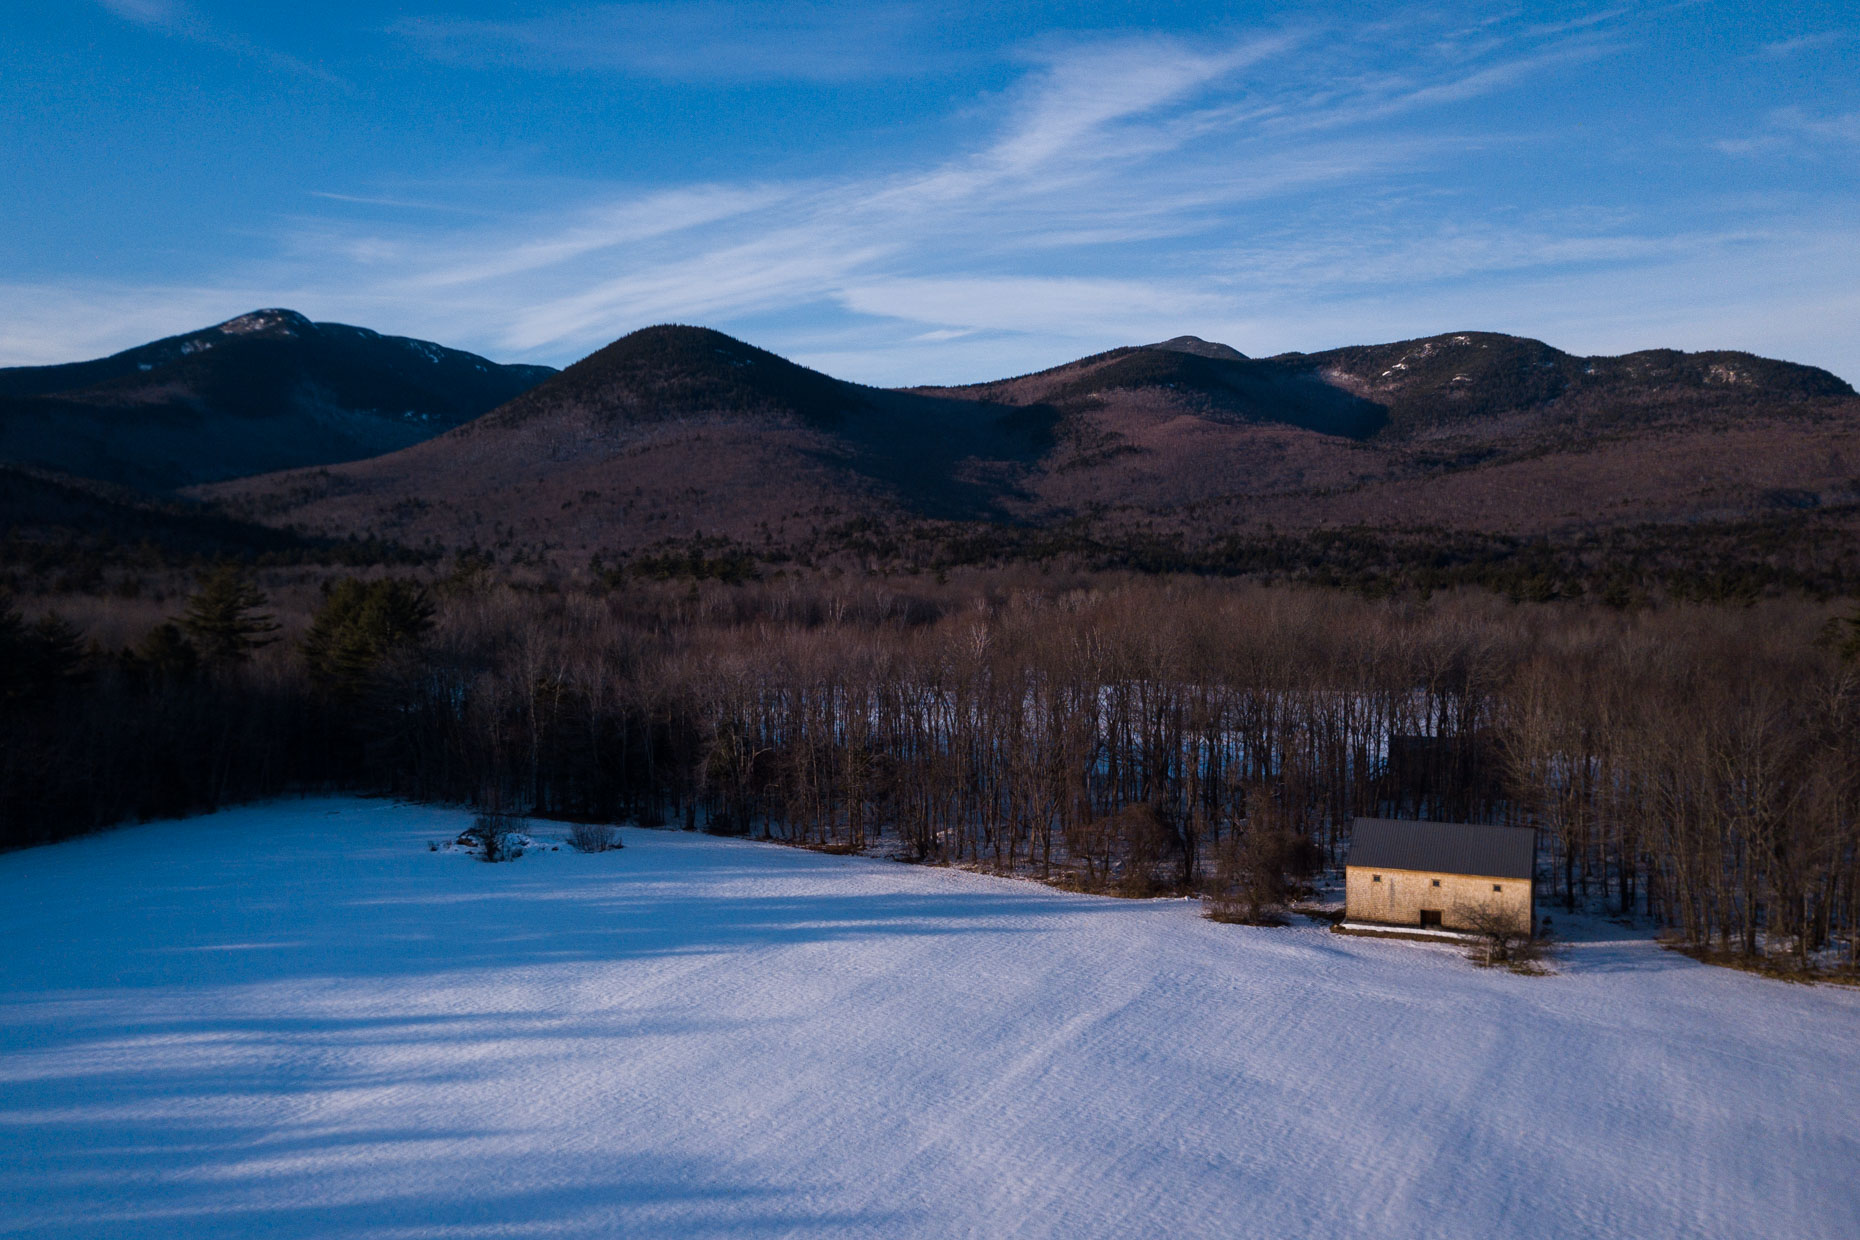 Wonalancet, New Hampshire from the air